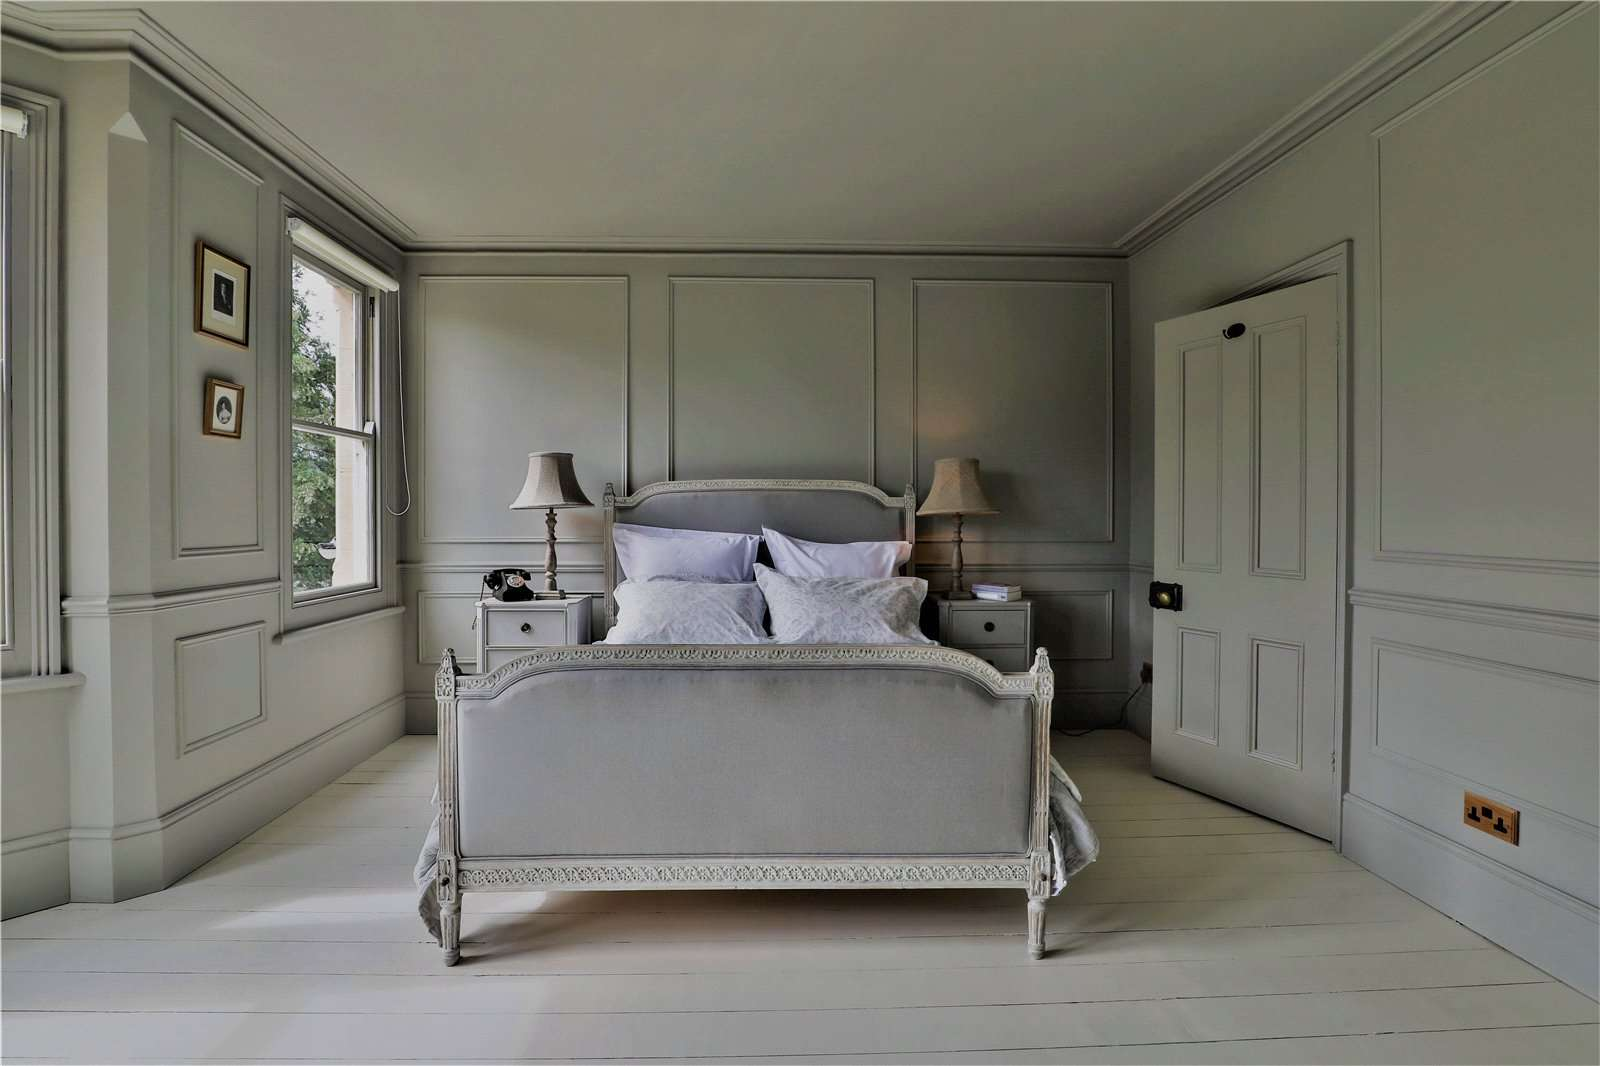 An elegantly-proportioned Victorian house on Woodstock Road in Oxford - Image Gallery 15 - Bedroom